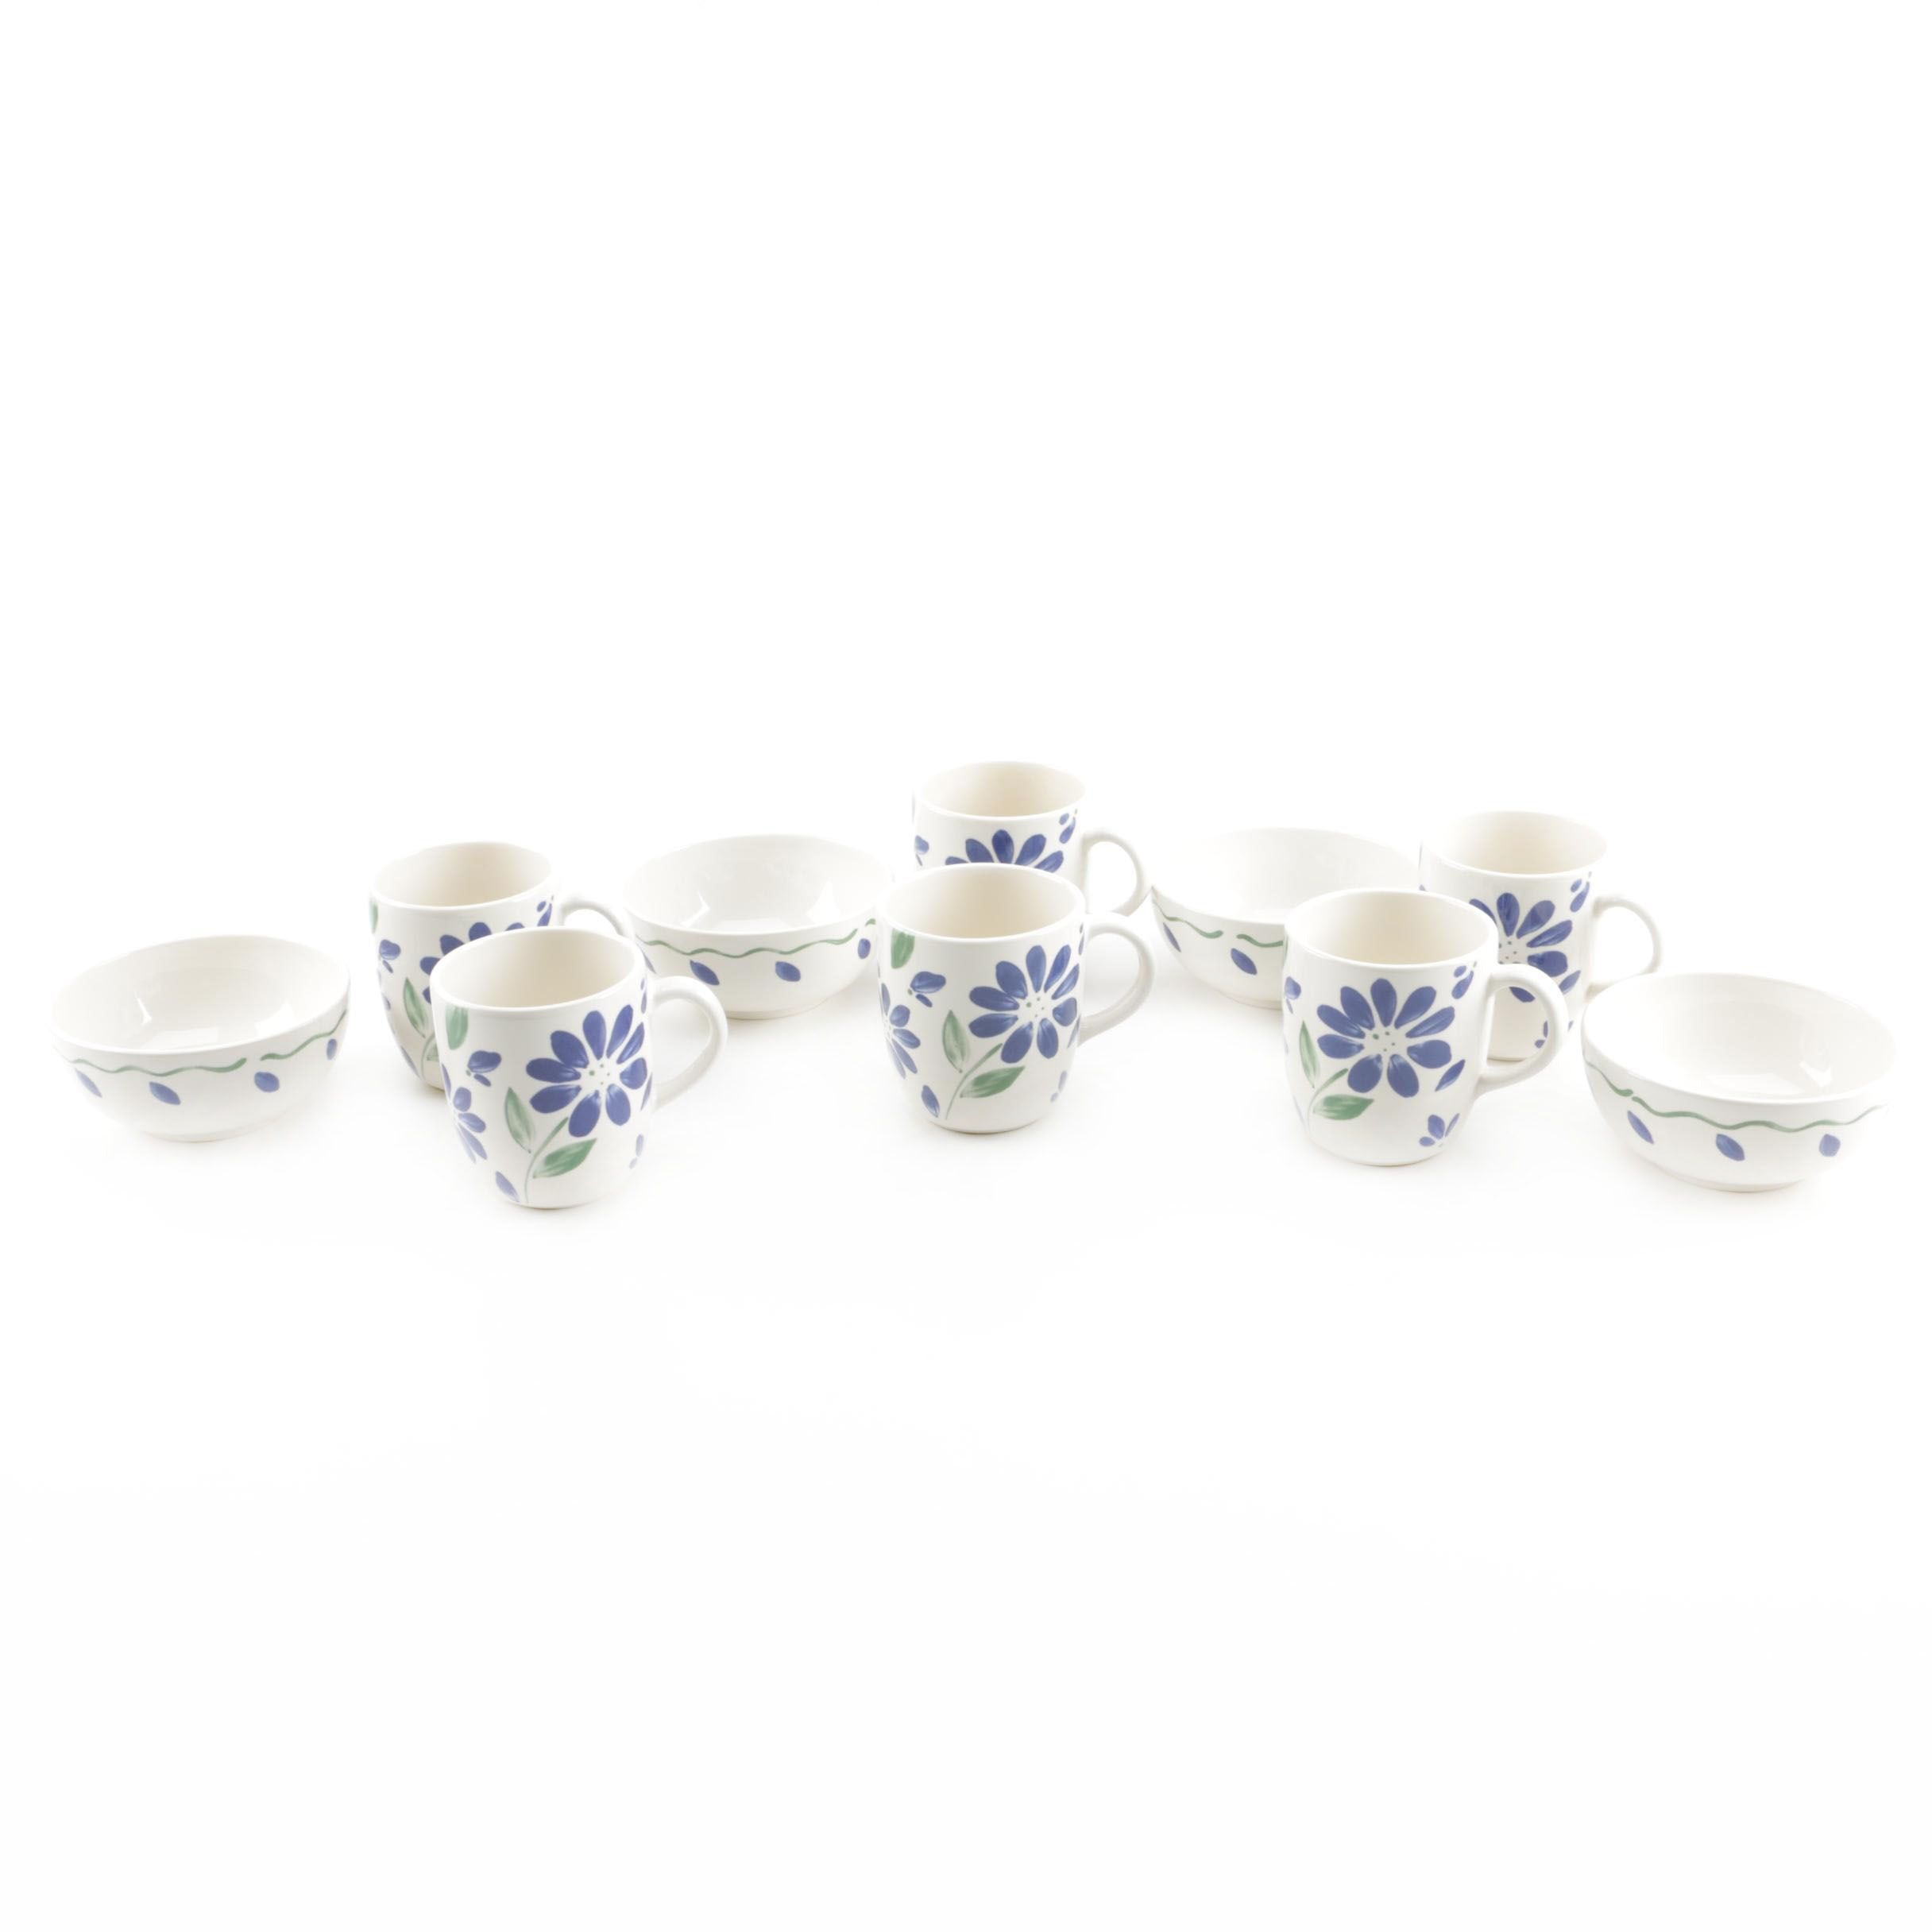 Blue Floral Stoneware Cups and Bowls